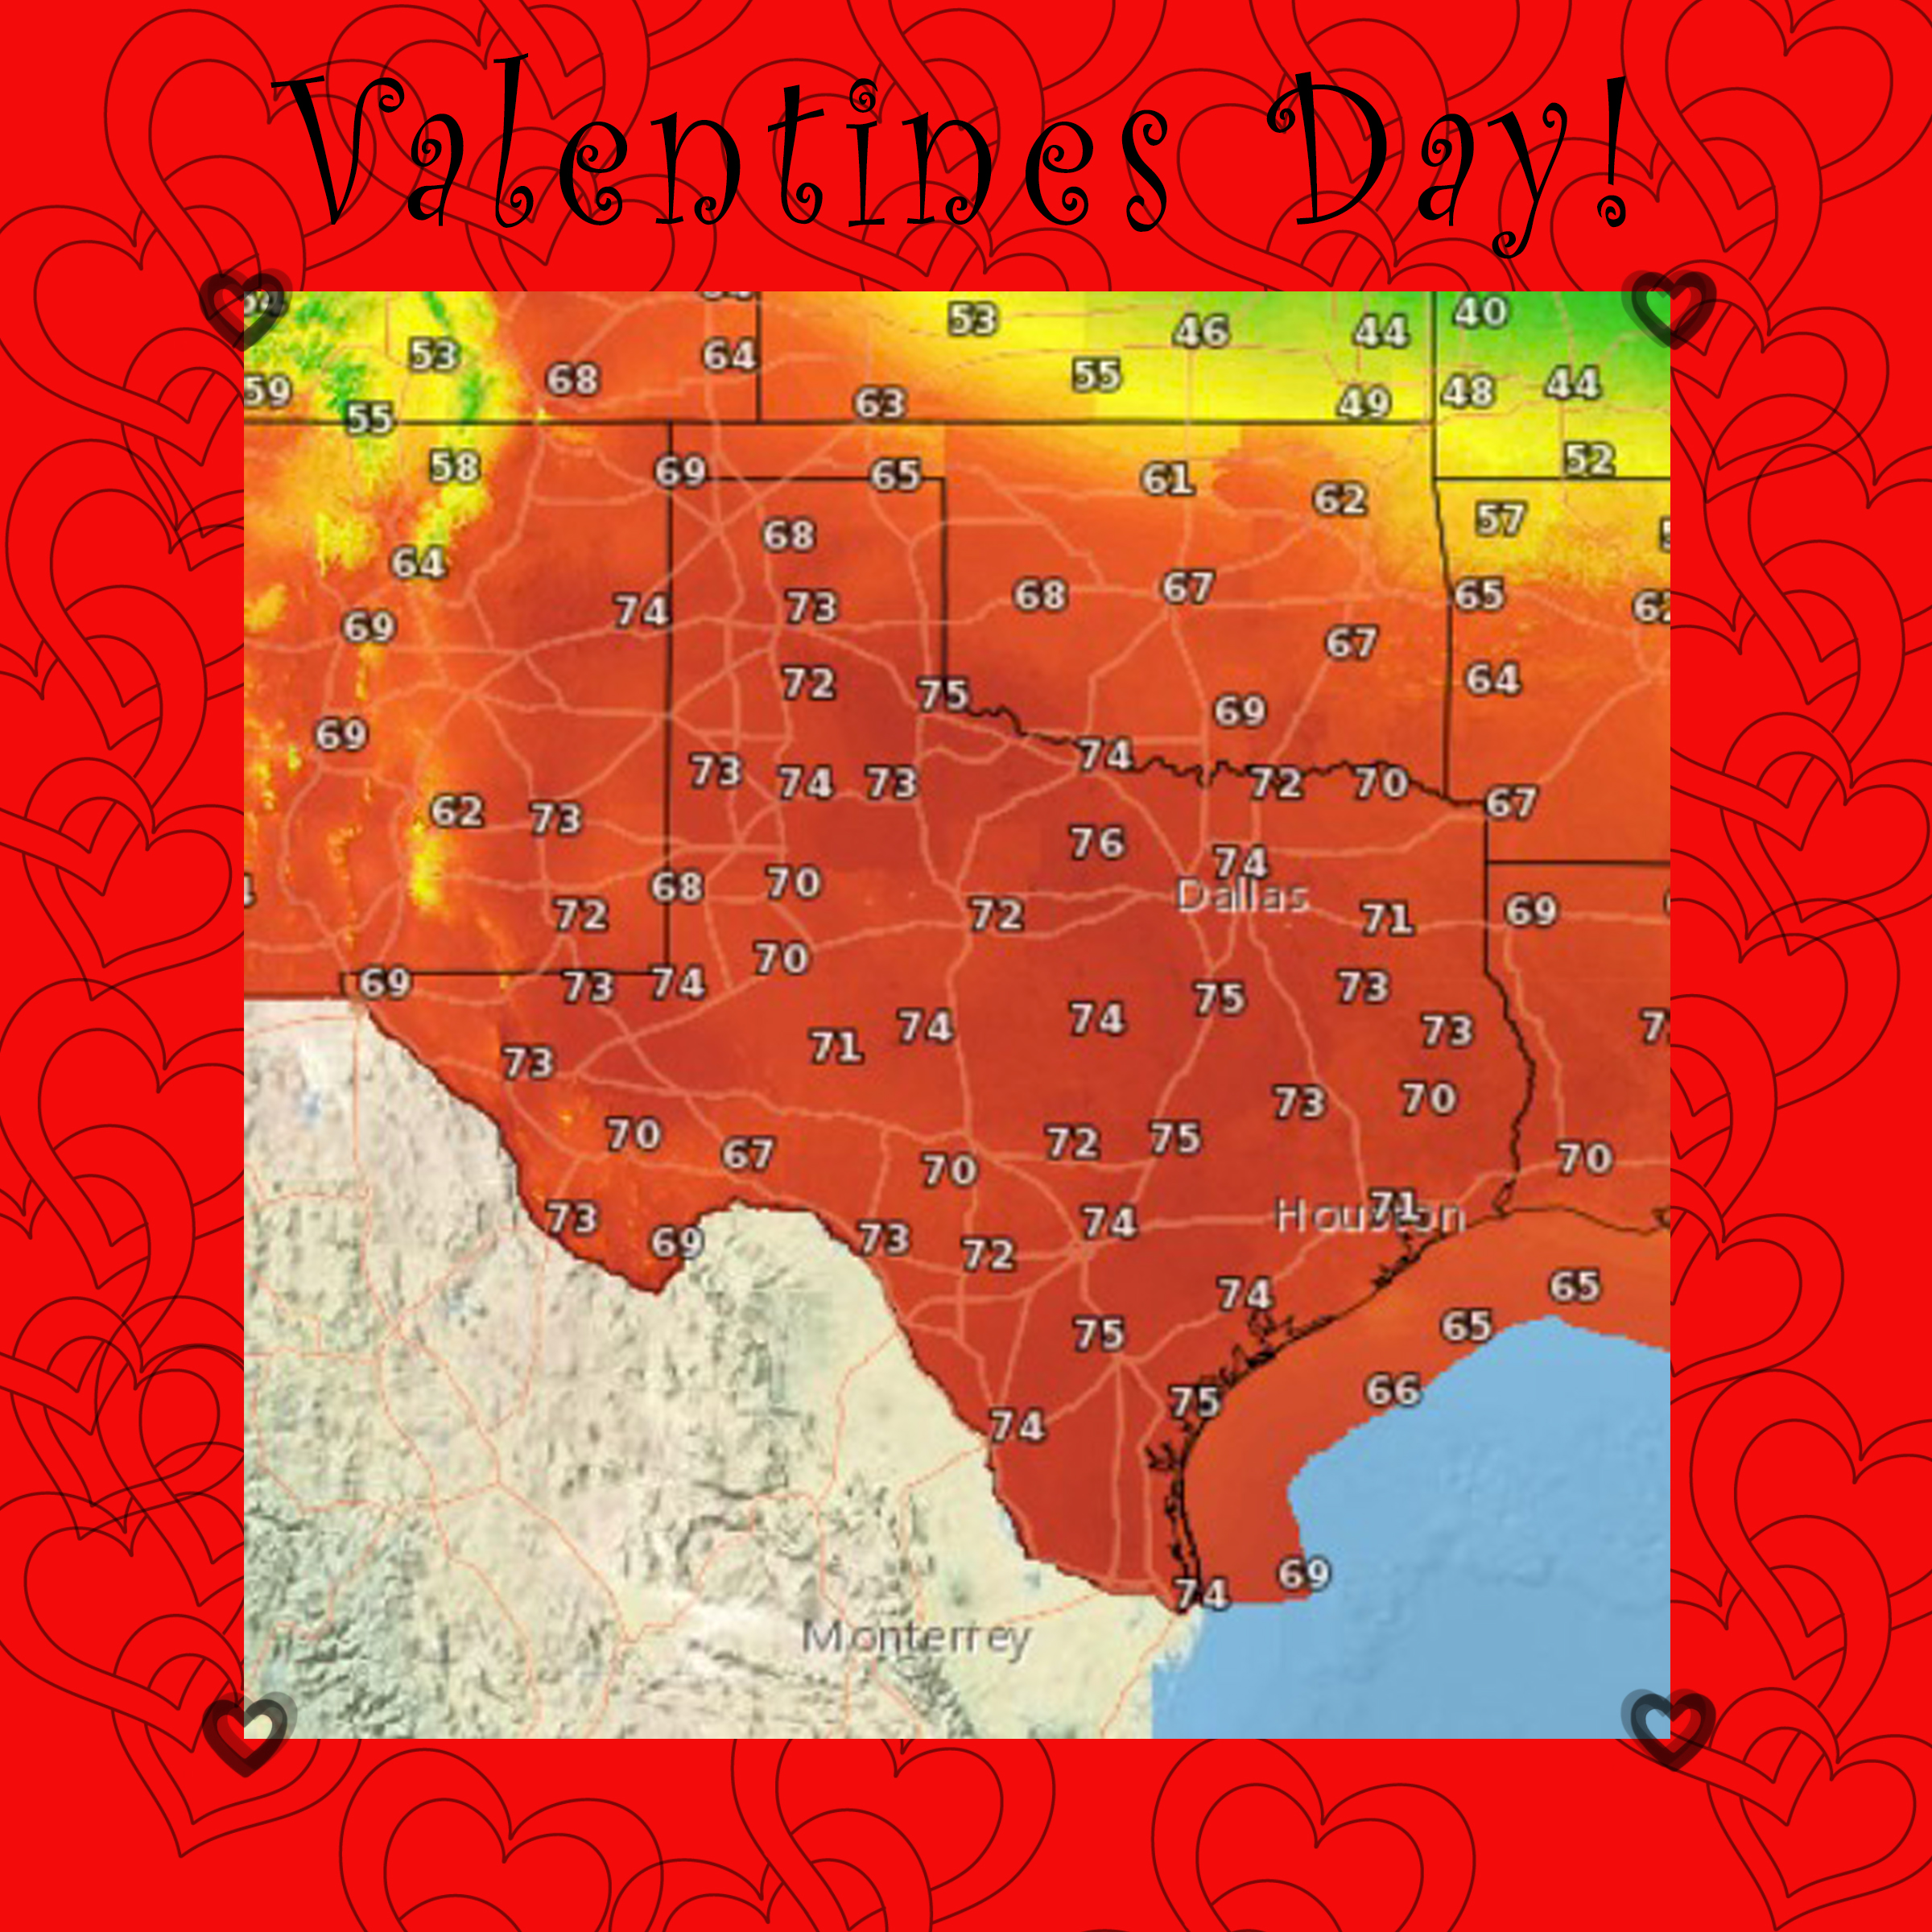 warming up for tonight meme valentines day - Warming Up For The Weekend Arctic Cold With Snow